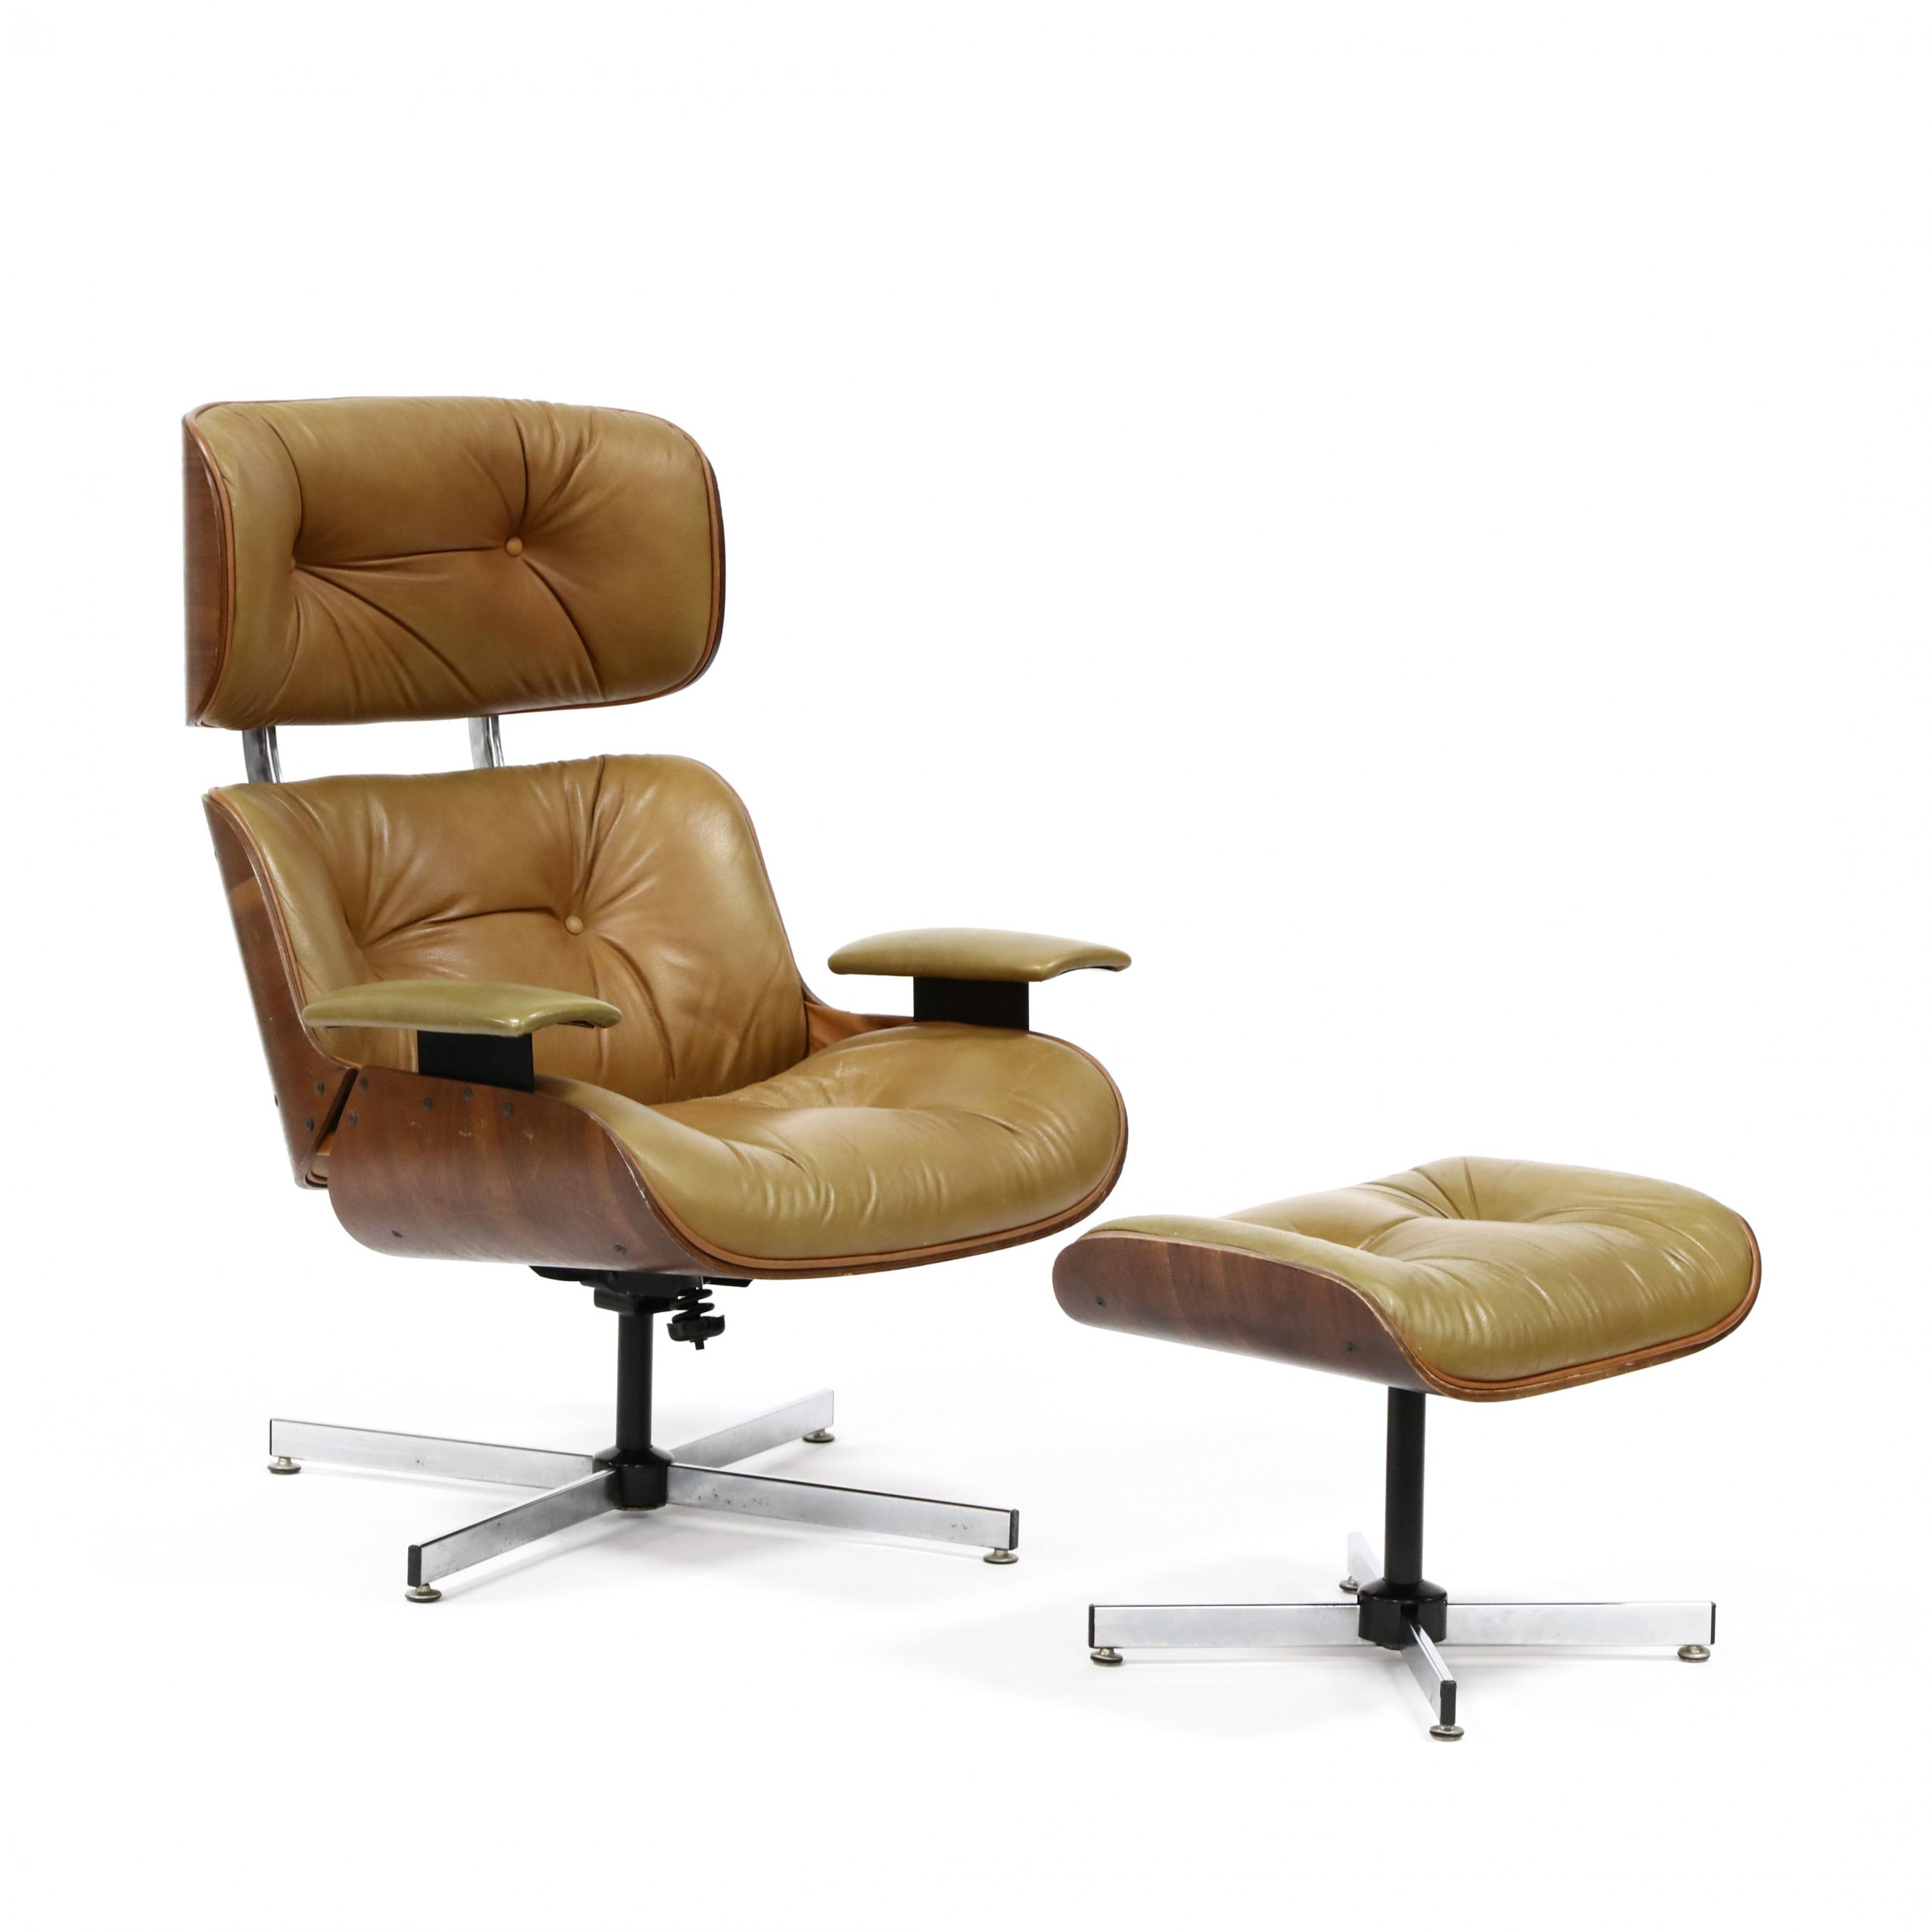 plycraft-vintage-lounge-chair-and-ottoman